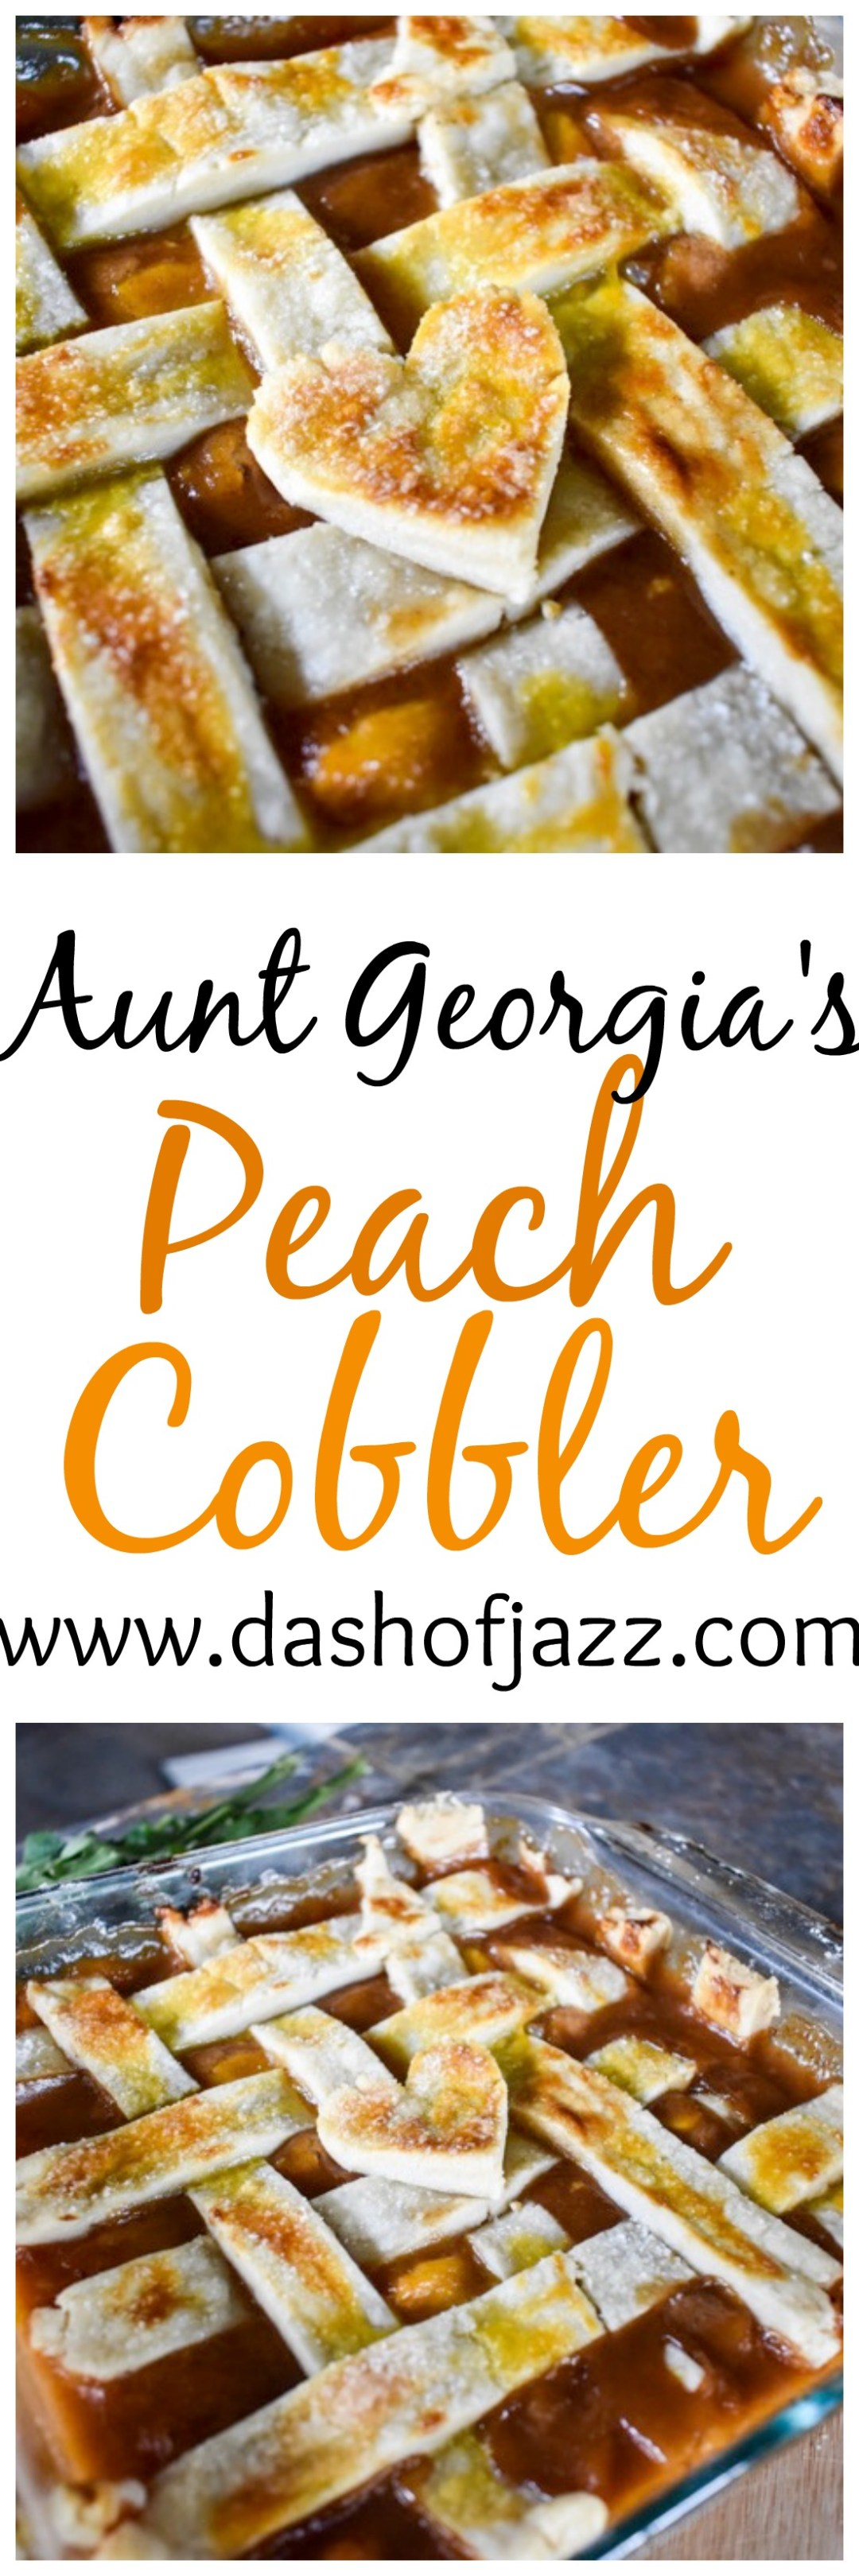 Aunt Georgia\'s Peach Cobbler is an ooey-gooey Southern classic dessert passed down through four generations of black girl magic. Recipe by Dash of Jazz